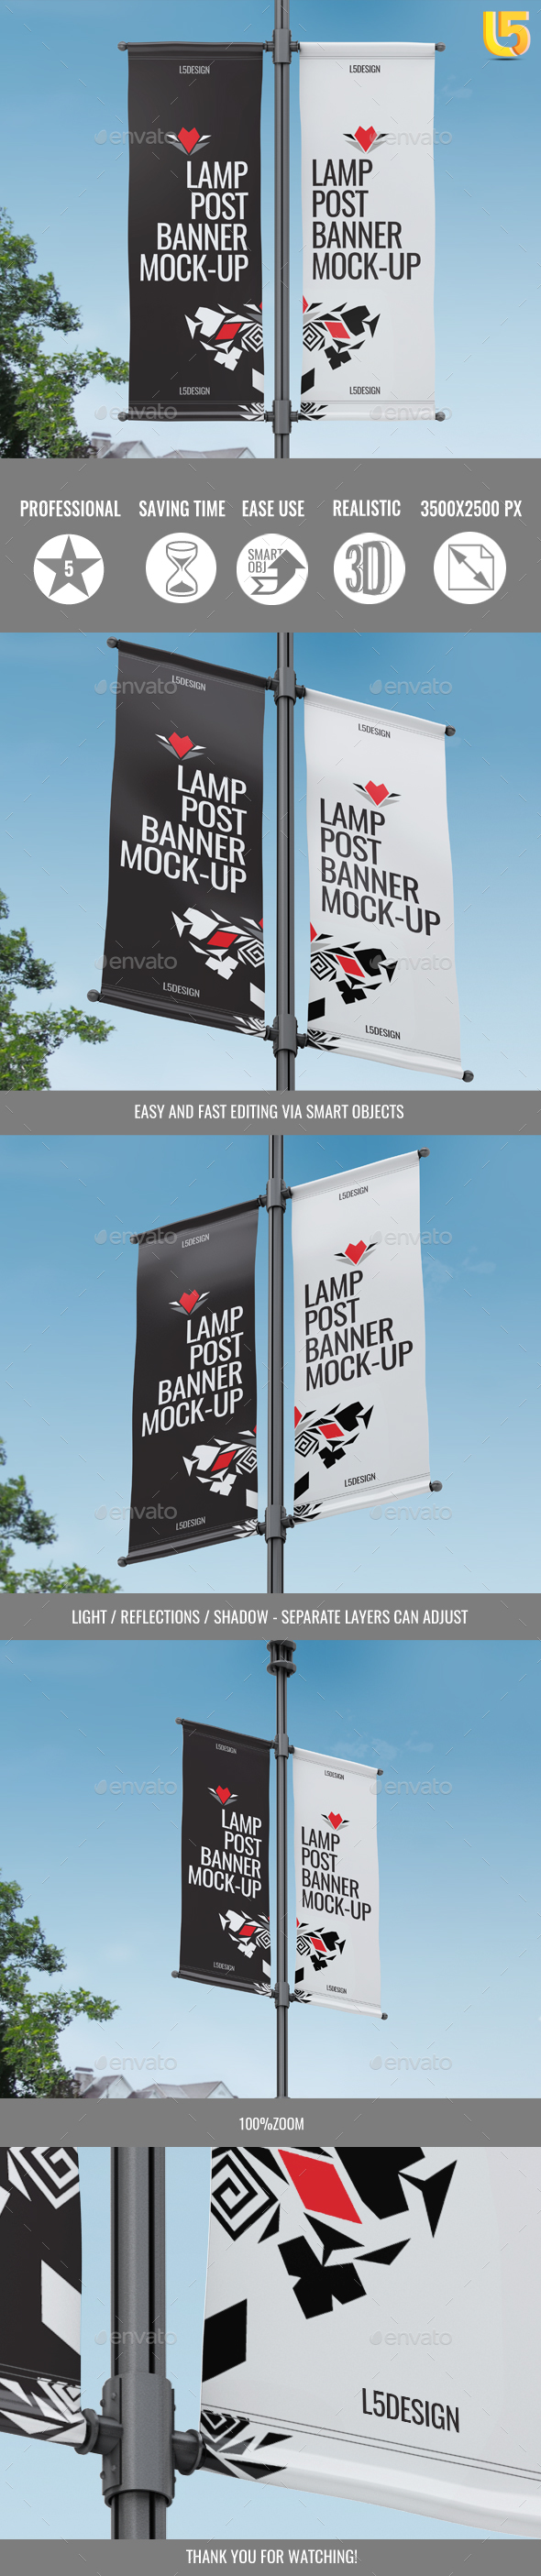 Lamp Post Banner Mock-Up - Signage Print